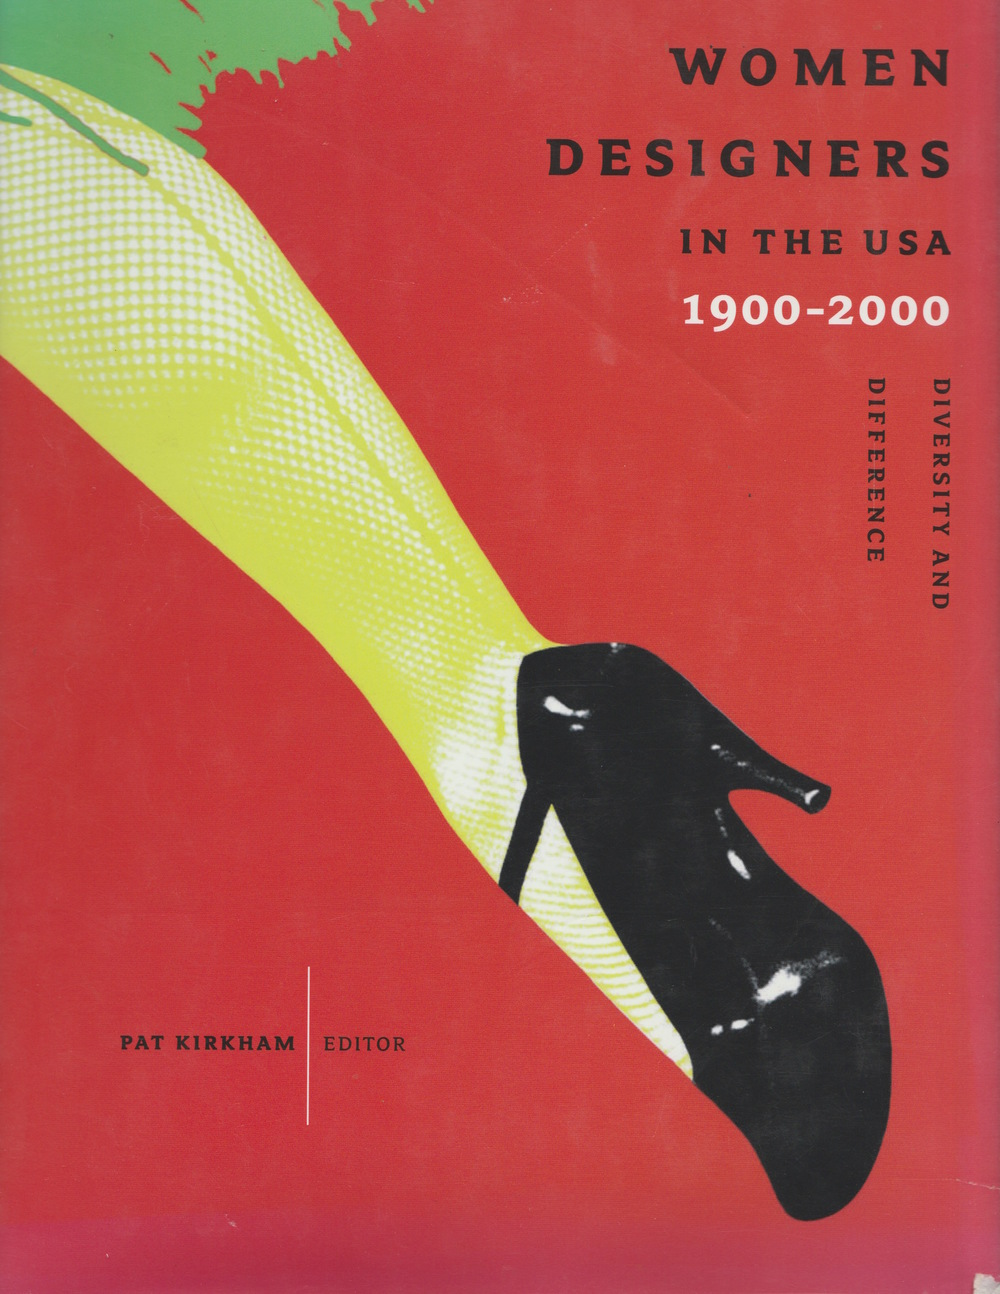 WOMEN DESIGNERS in the USA 1900-2000.jpeg